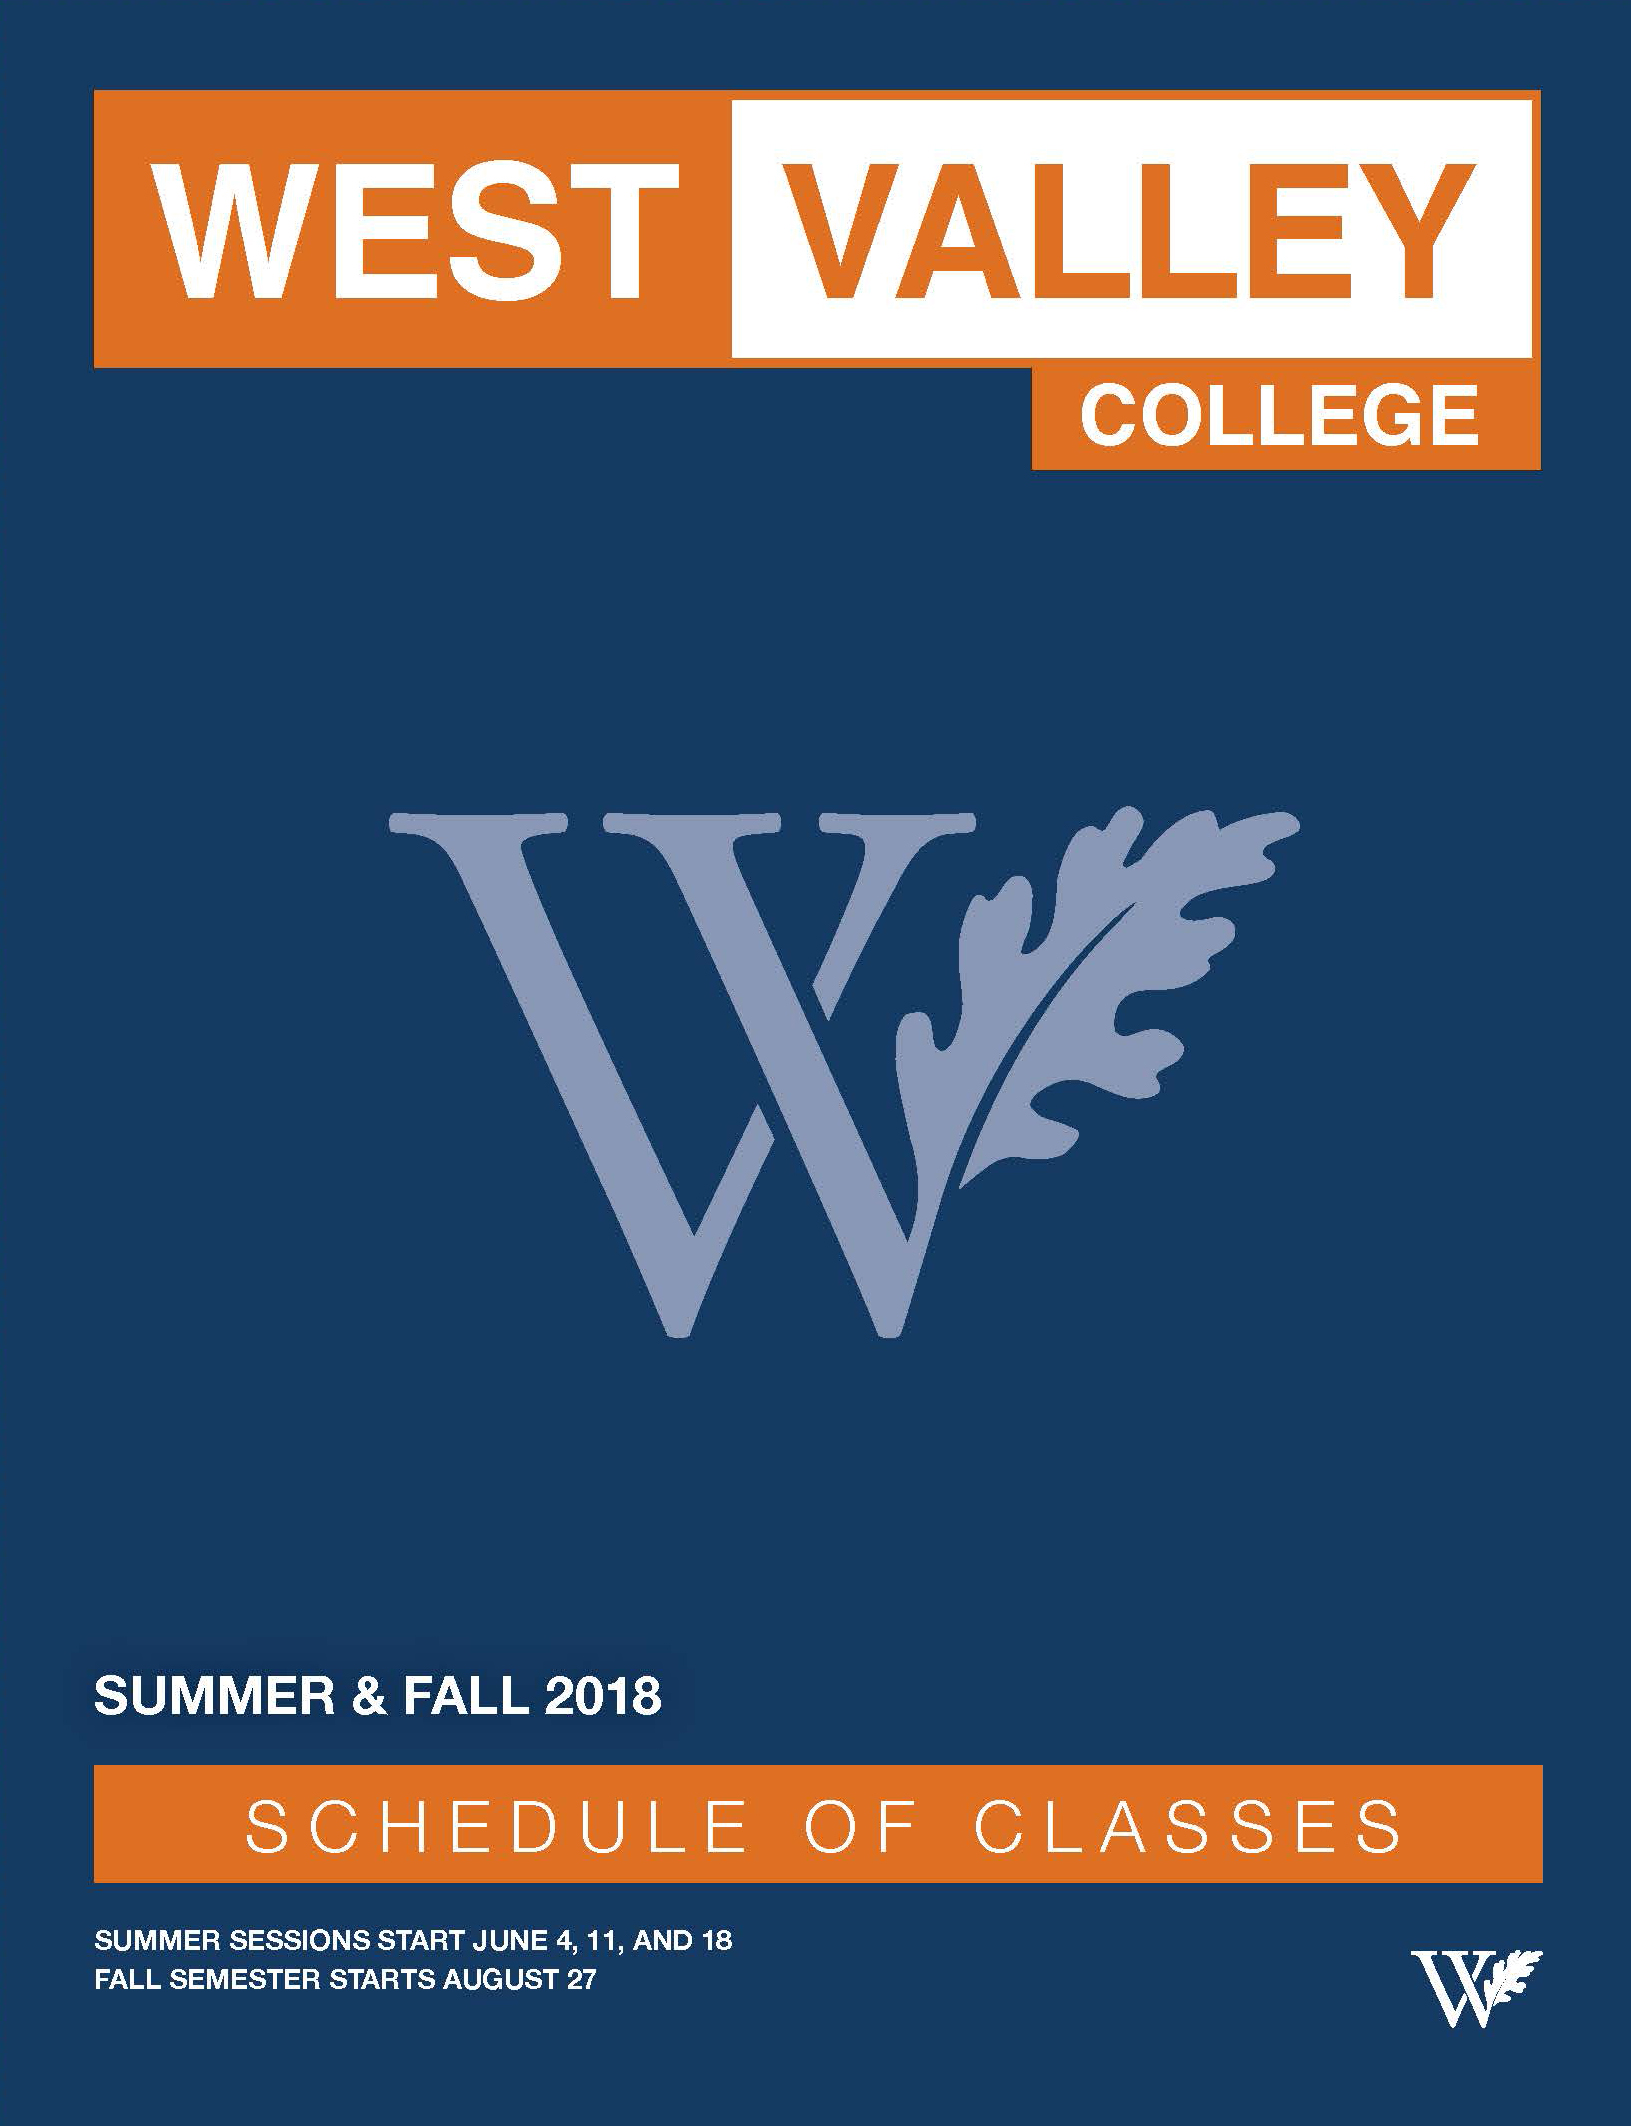 West Valley College Summer/Fall 2018 Class Schedule